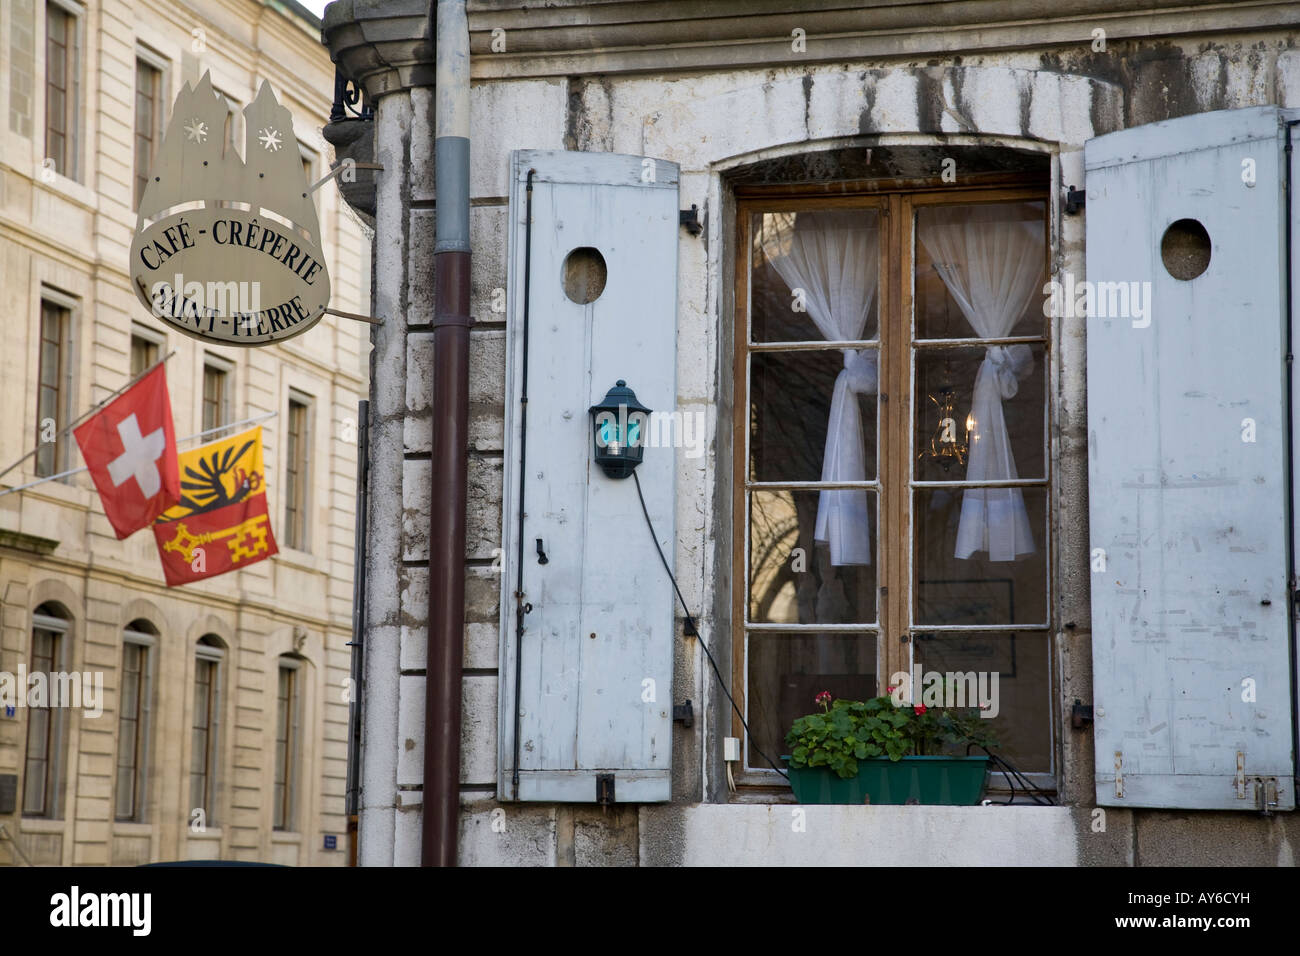 Window of cafe creperie with shutters in the old town area of Geneva - Stock Image